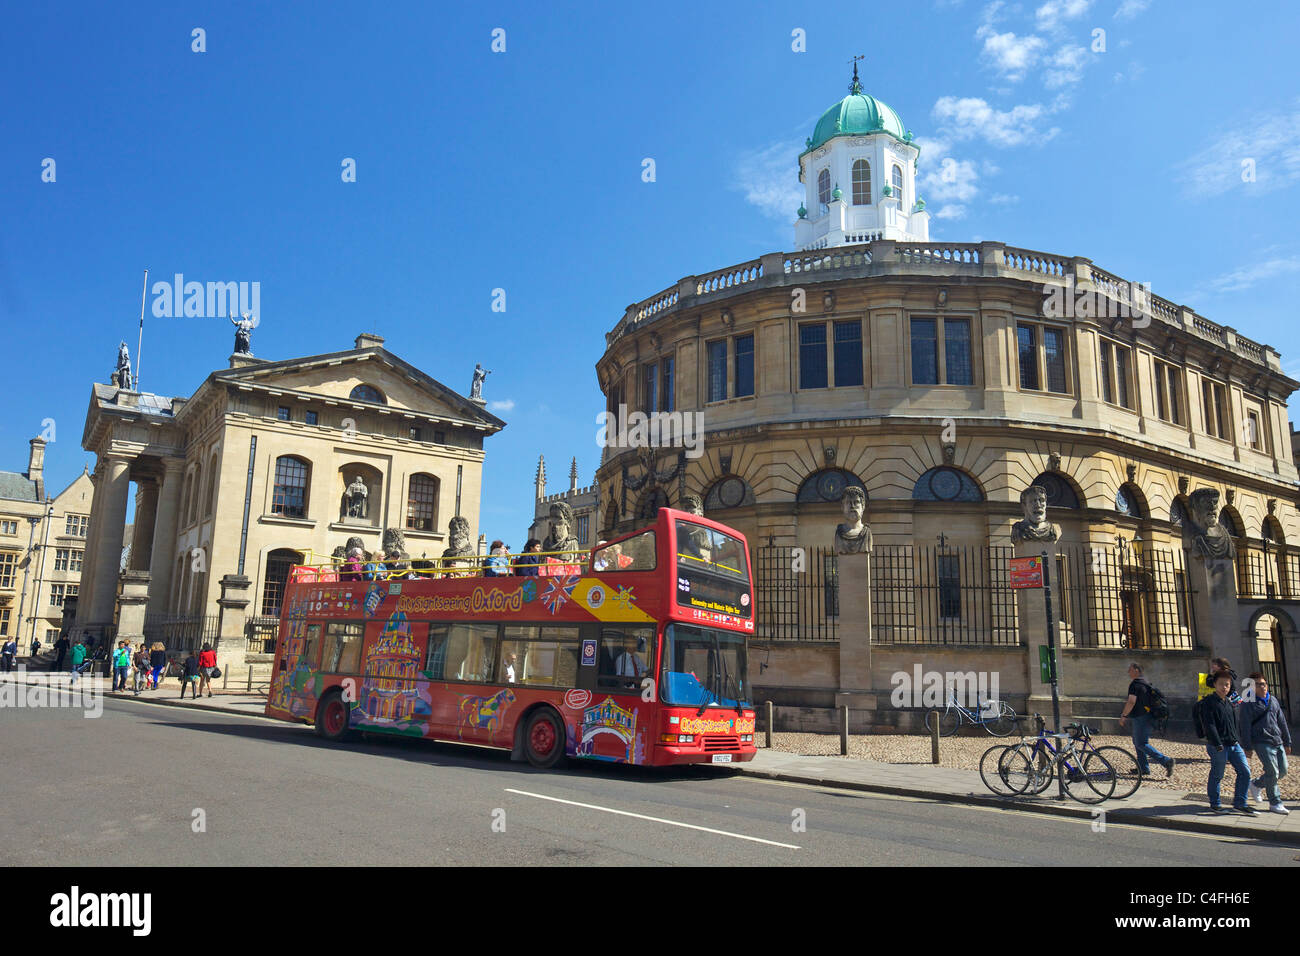 Open-top tourist bus outside Sheldonian Theatre and Clarendon Building, Broad Street, Oxford University, City centre, - Stock Image